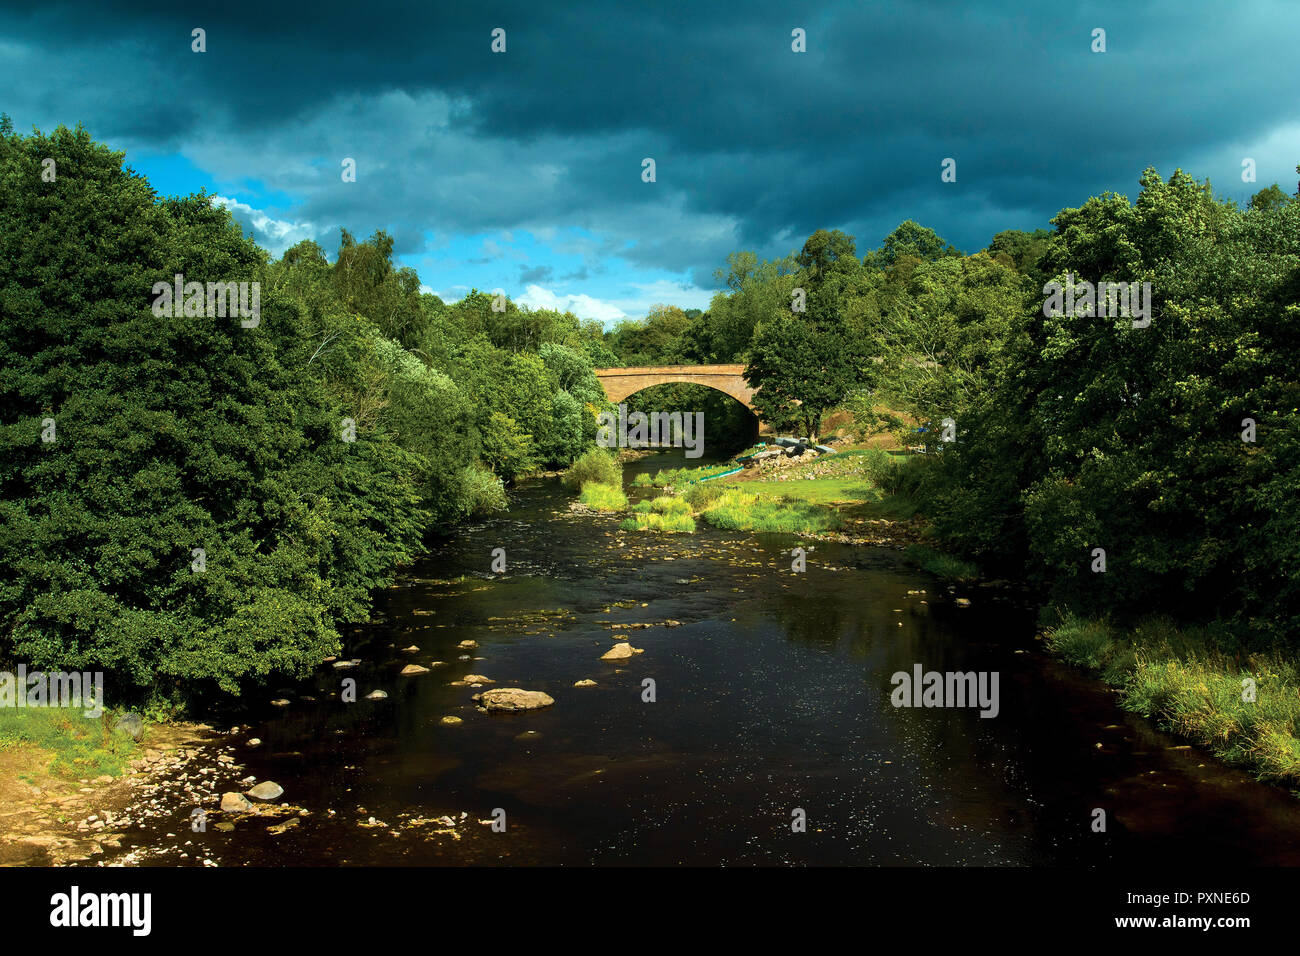 The Old Avon Bridge and the Avon Water, Chatelherault Country Park, Hamilton, South Lanarkshire - Stock Image